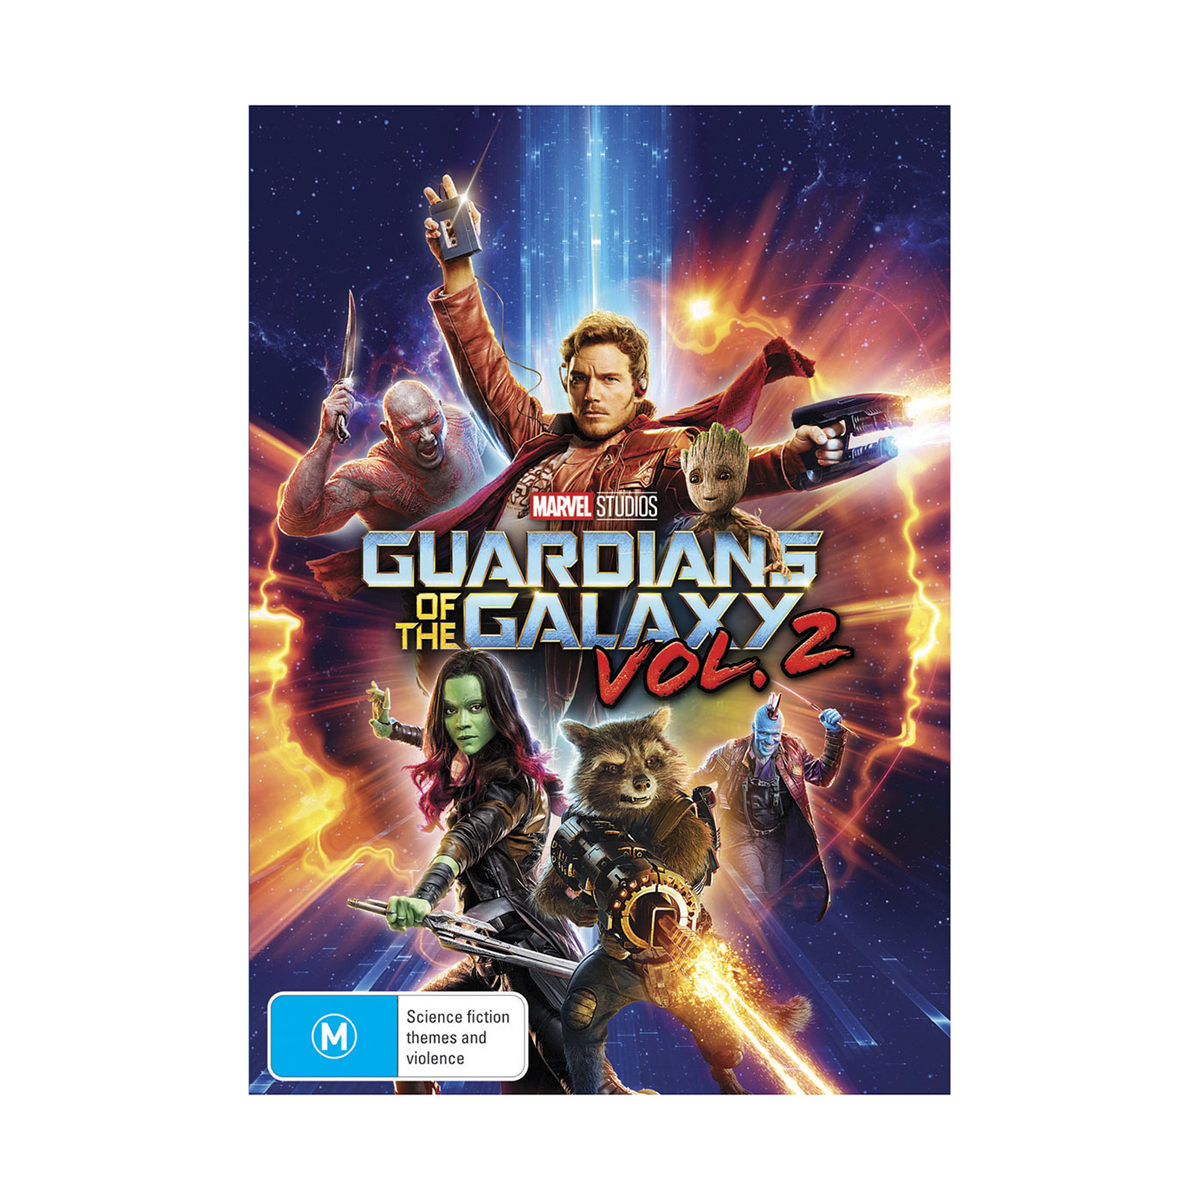 The Room Dvd Australia Guardians Of The Galaxy Vol 2 Dvd Kmart